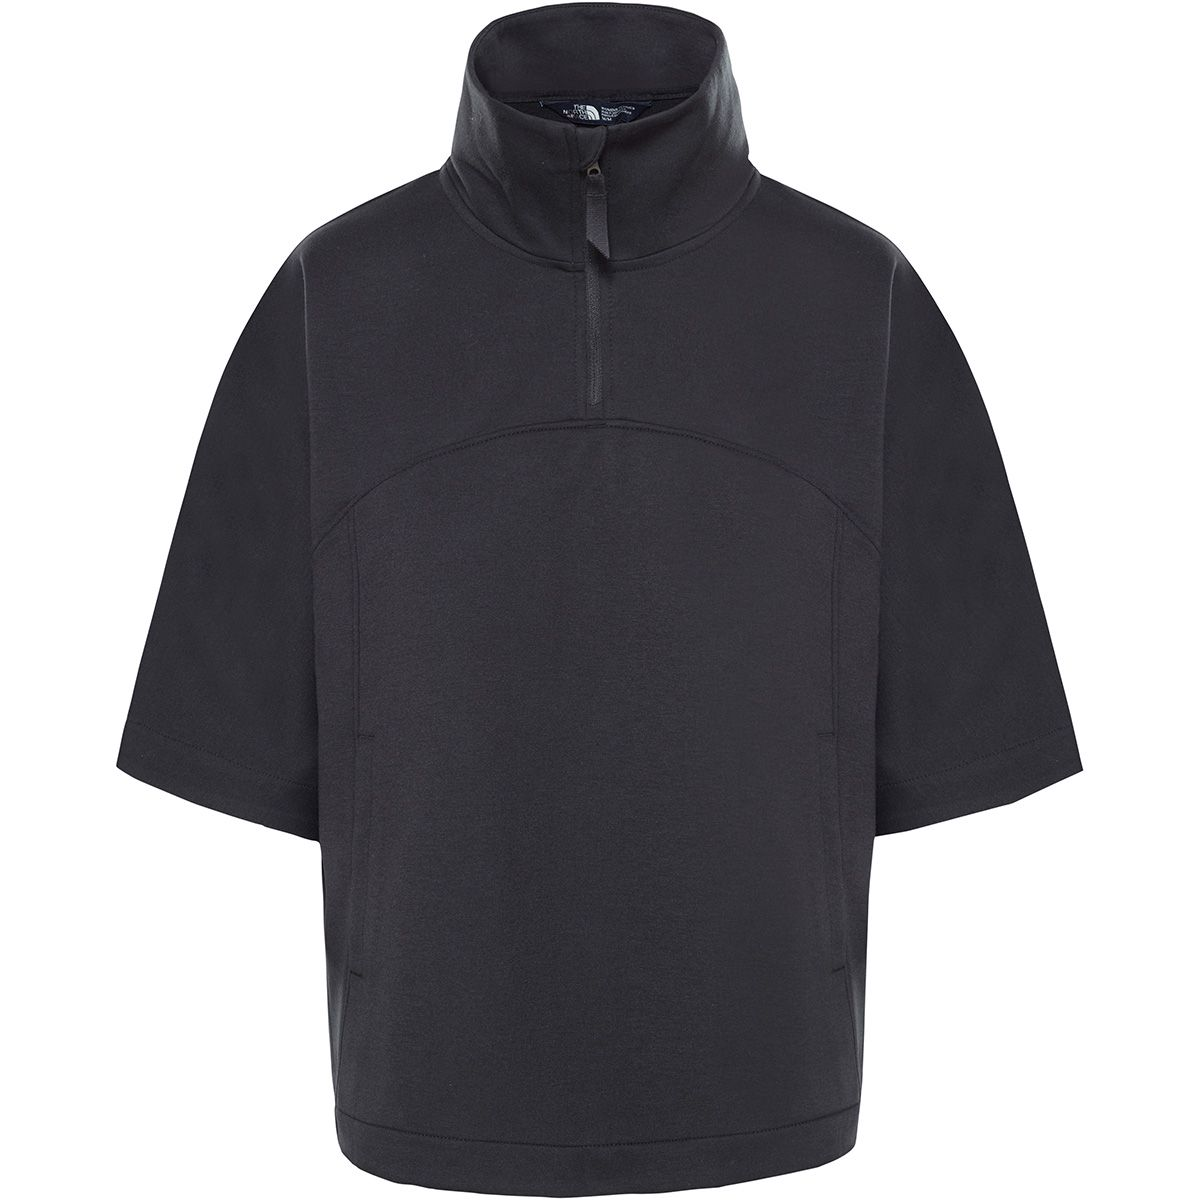 The North Face poncho